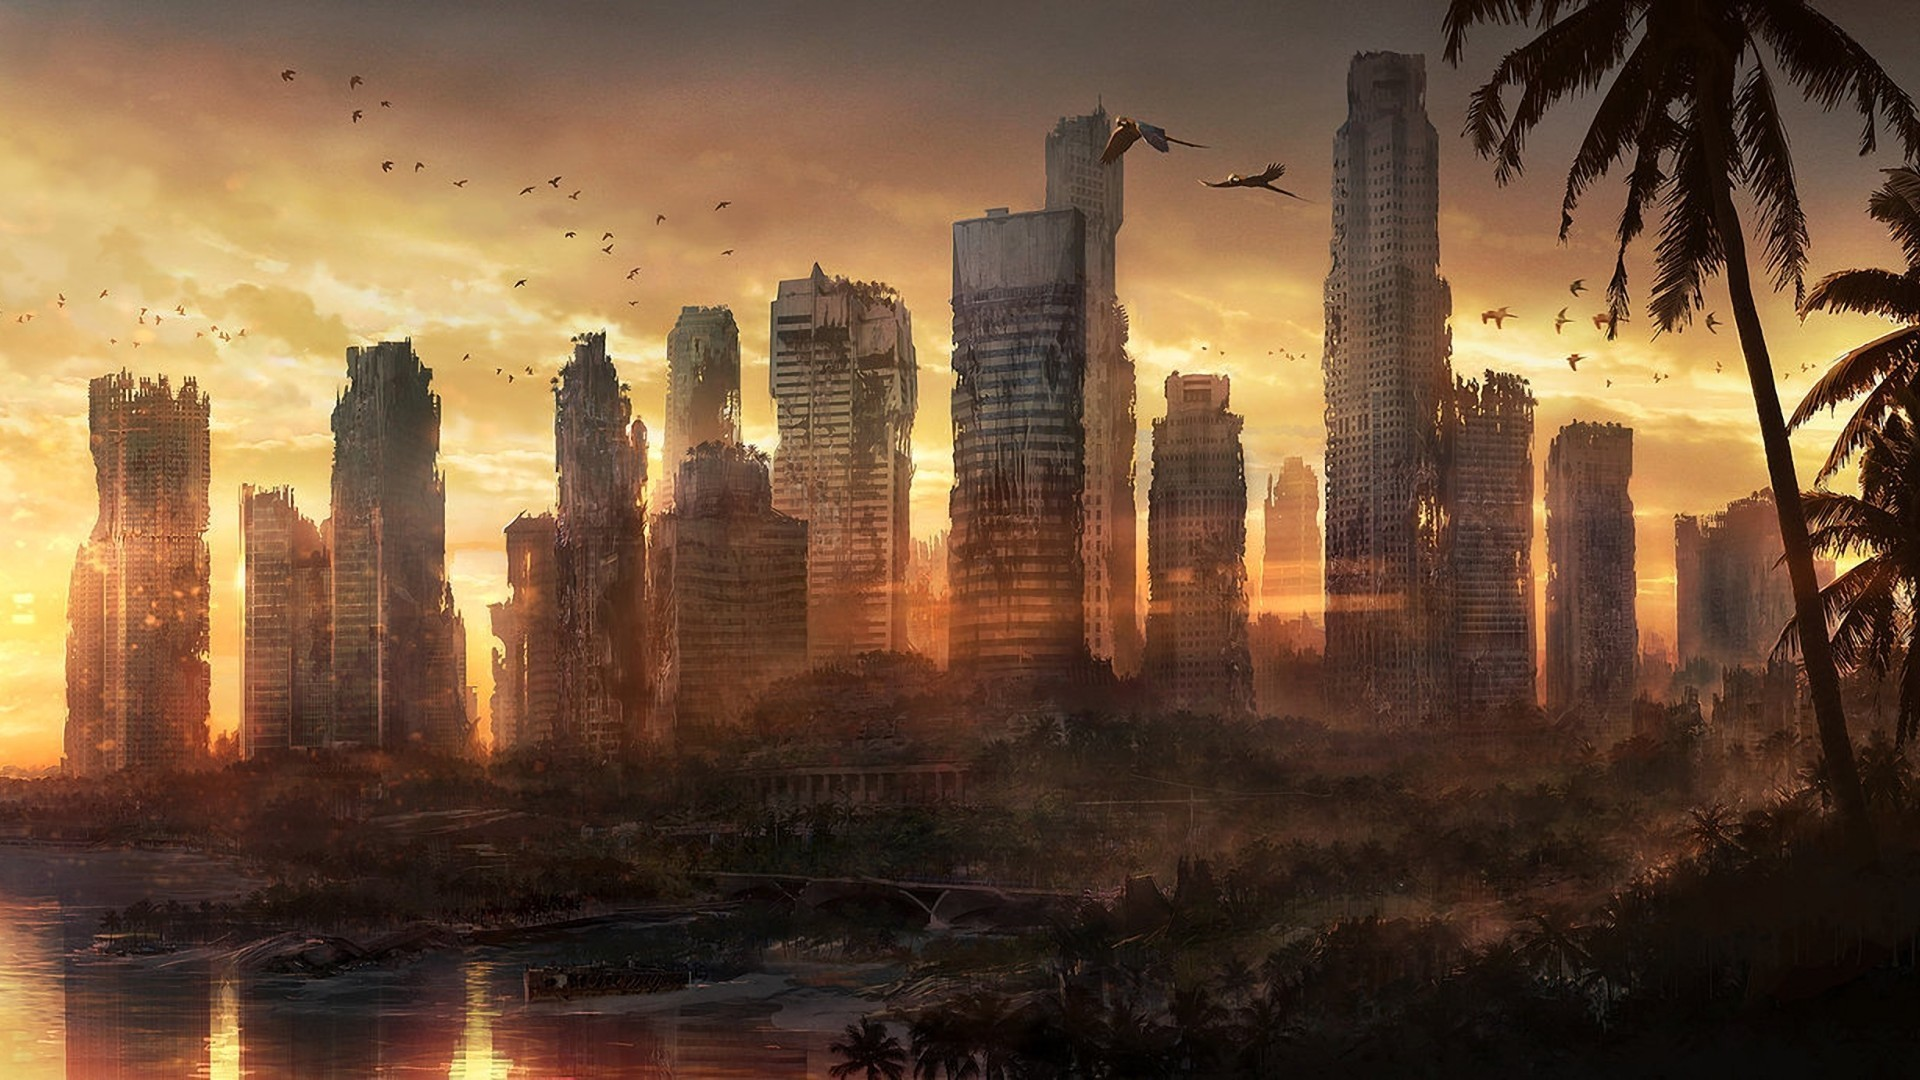 apocalyptic hd wallpaper 2560x1440 - photo #25